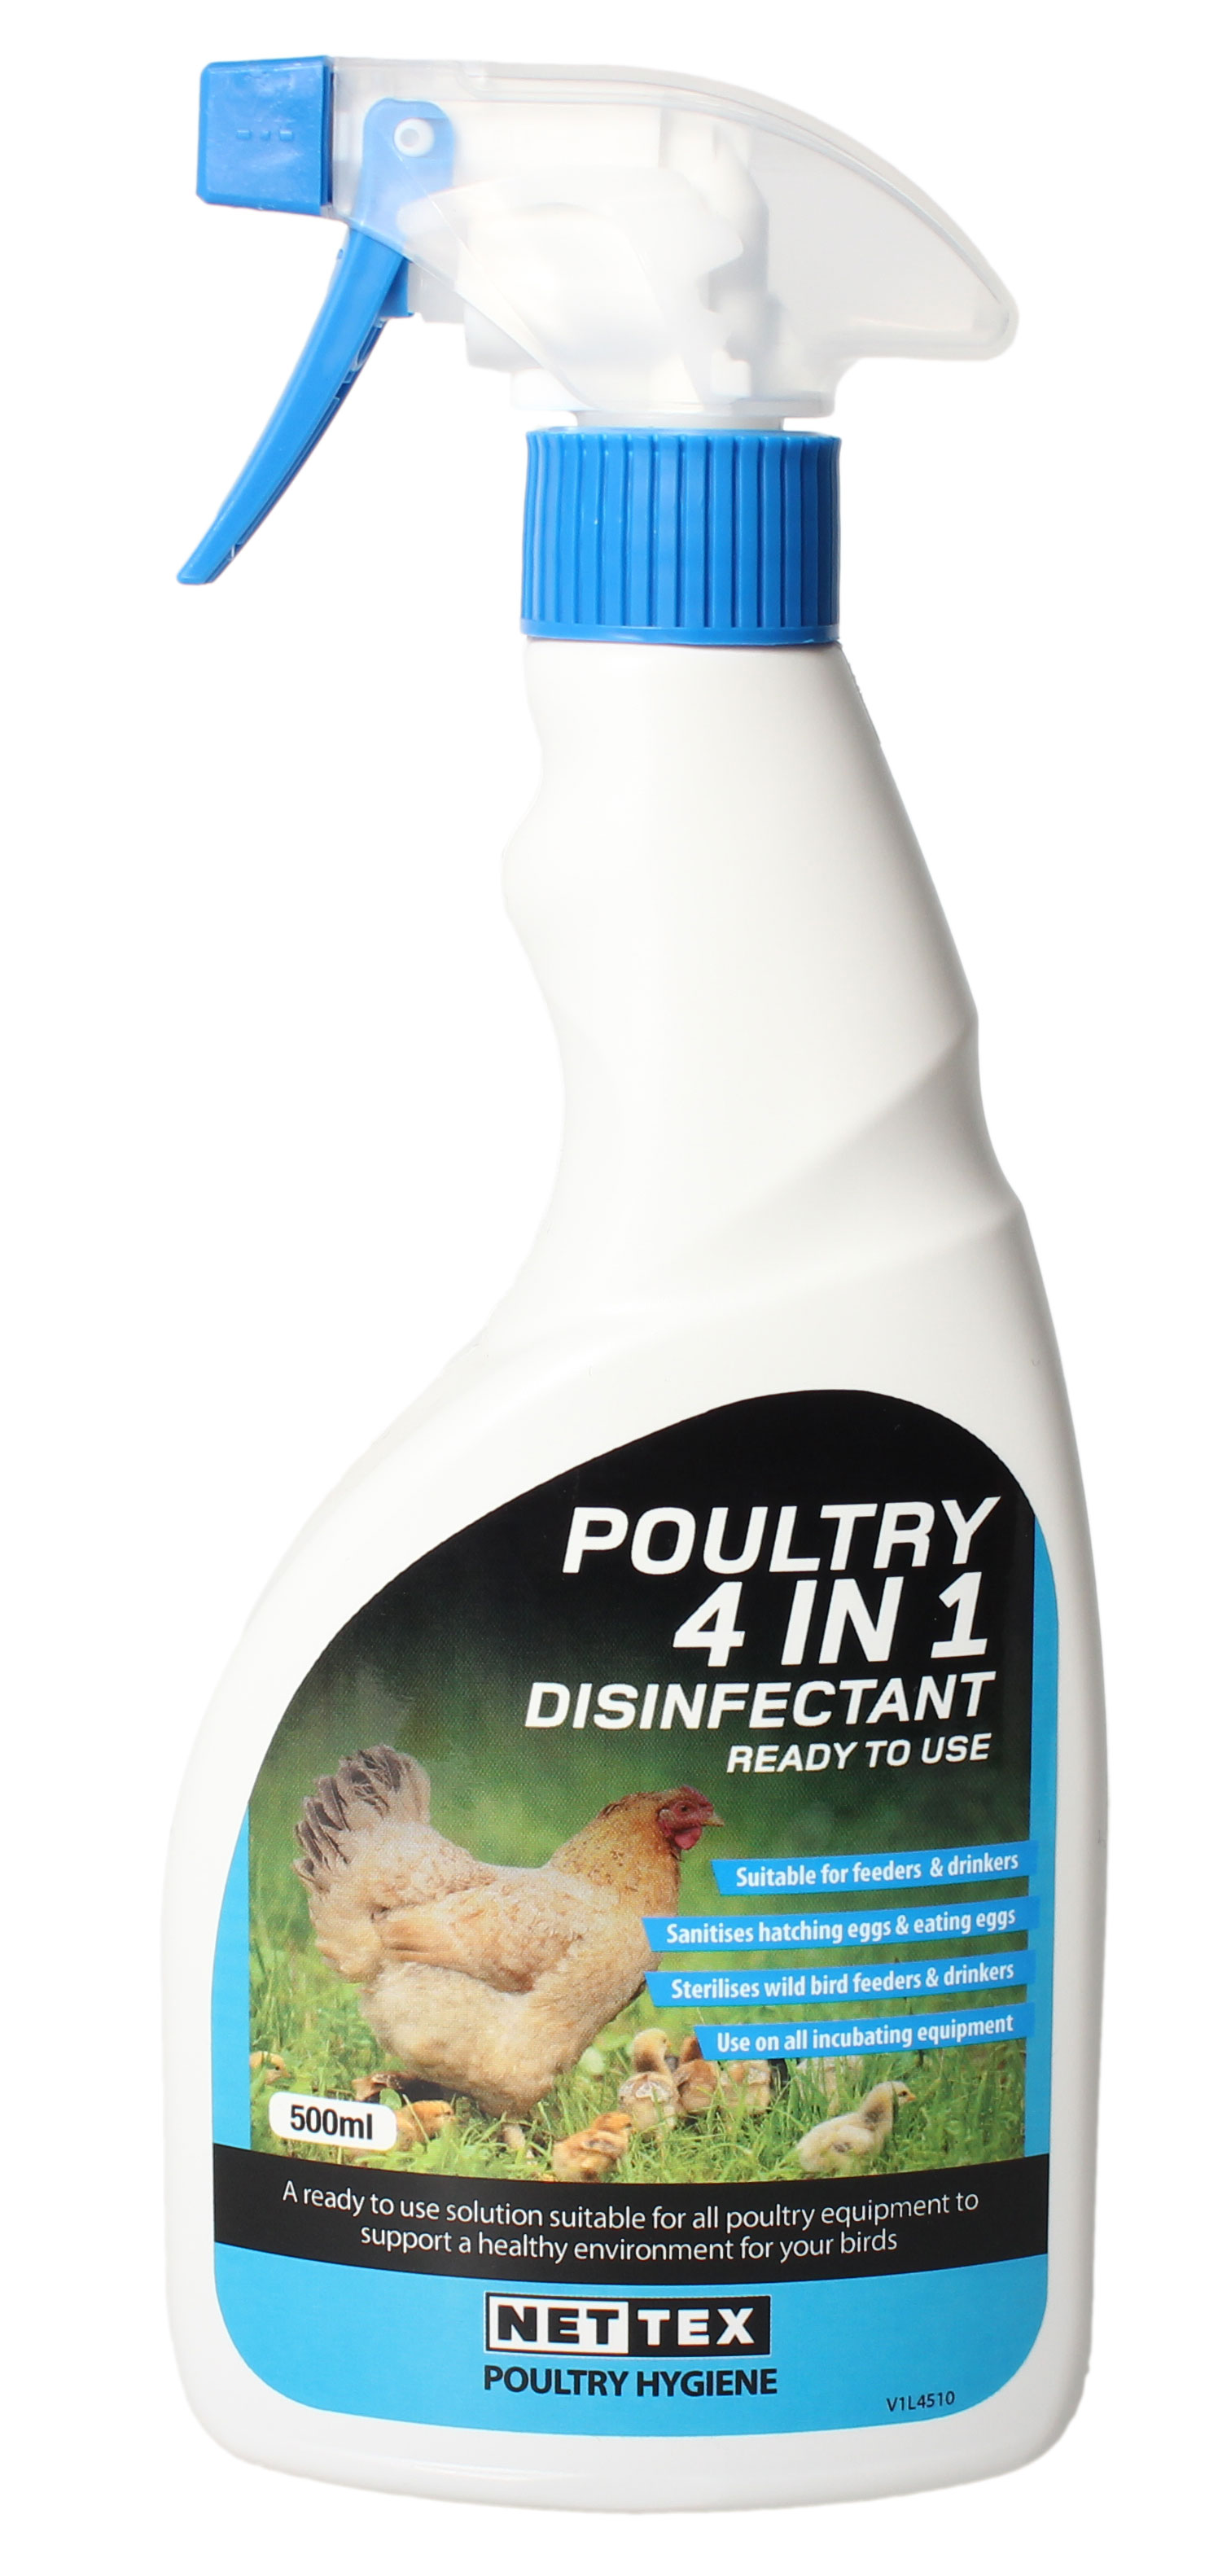 Poultry 4 In 1 Disinfectant 500ml Cleaning Products For Chicken